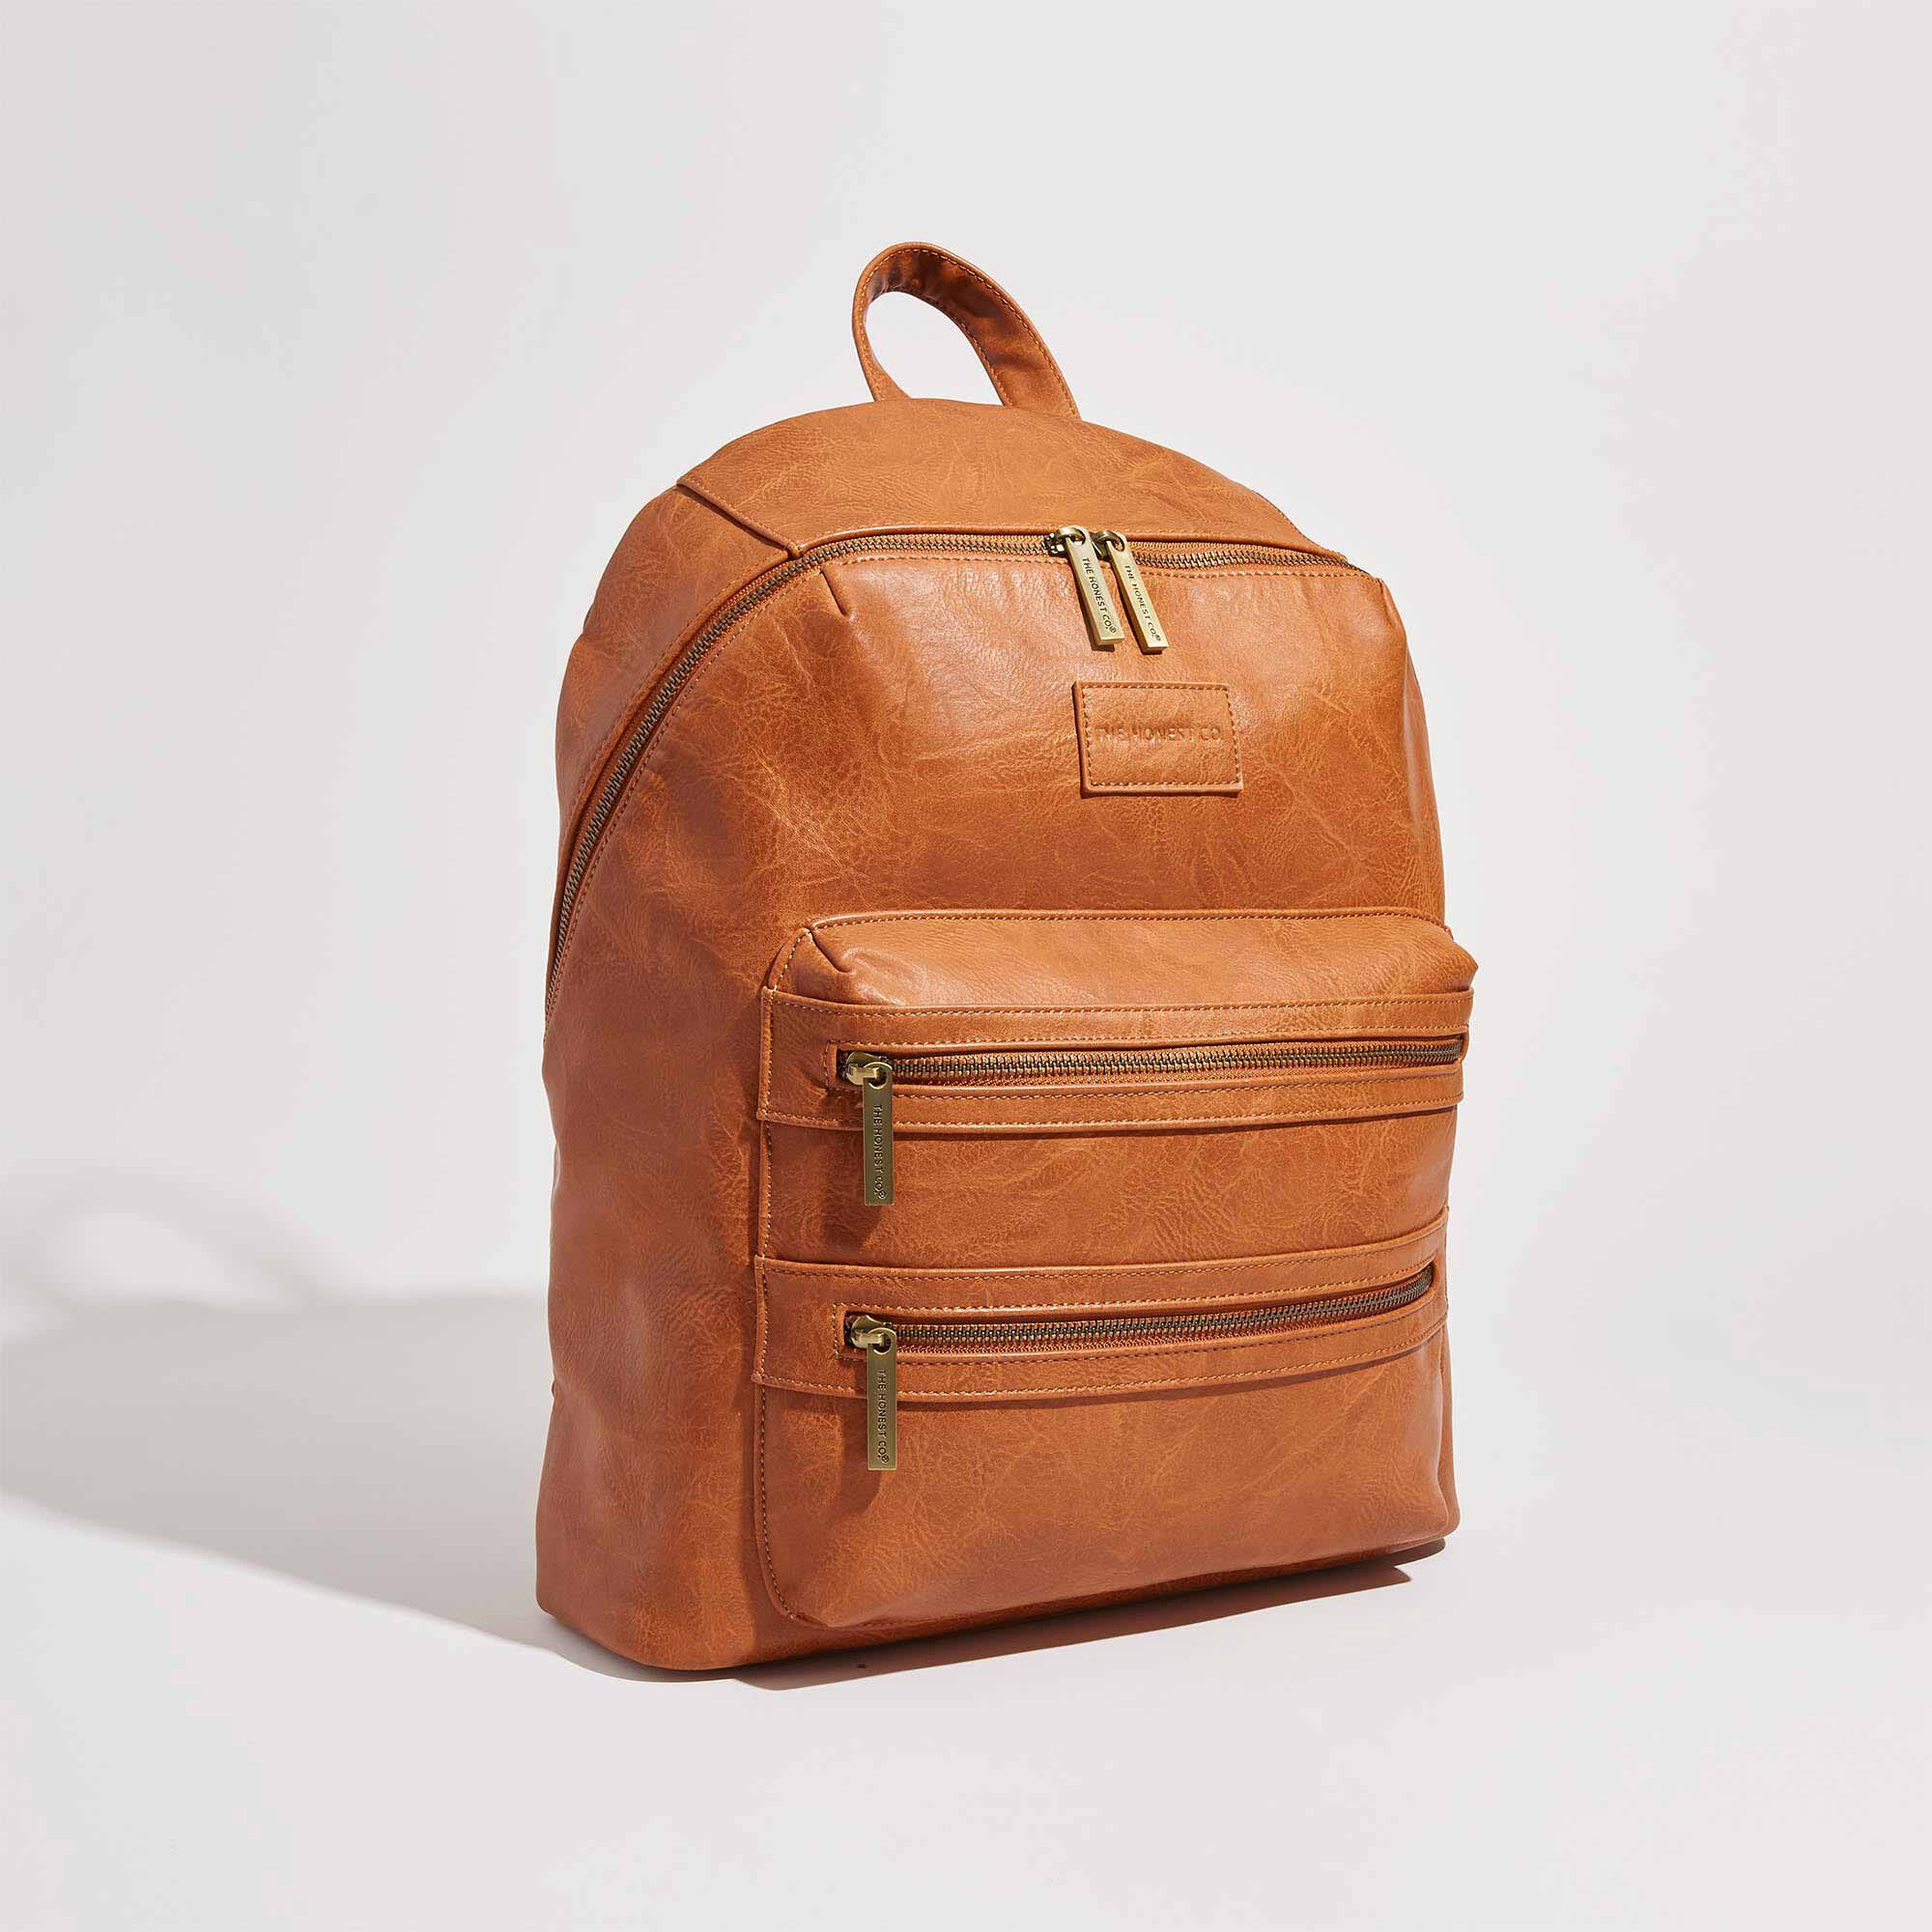 brown or cognac leather backpack front shot